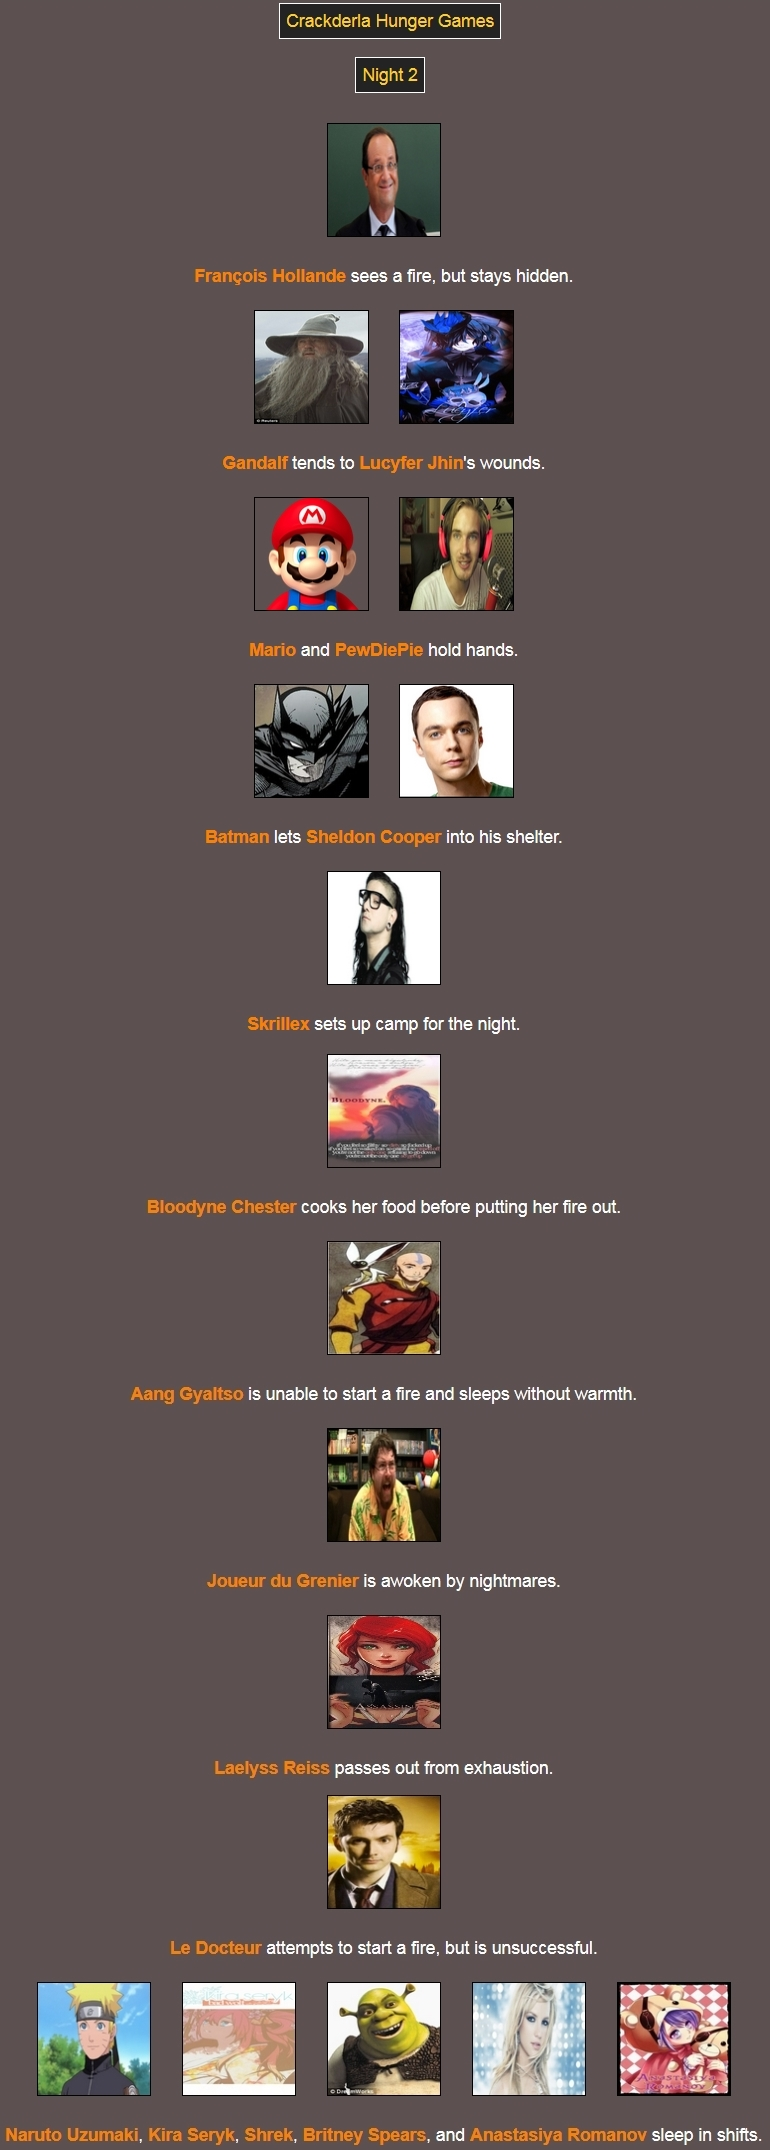 [Crackderla N°1] Hunger Games - Page 5 18962036Night2